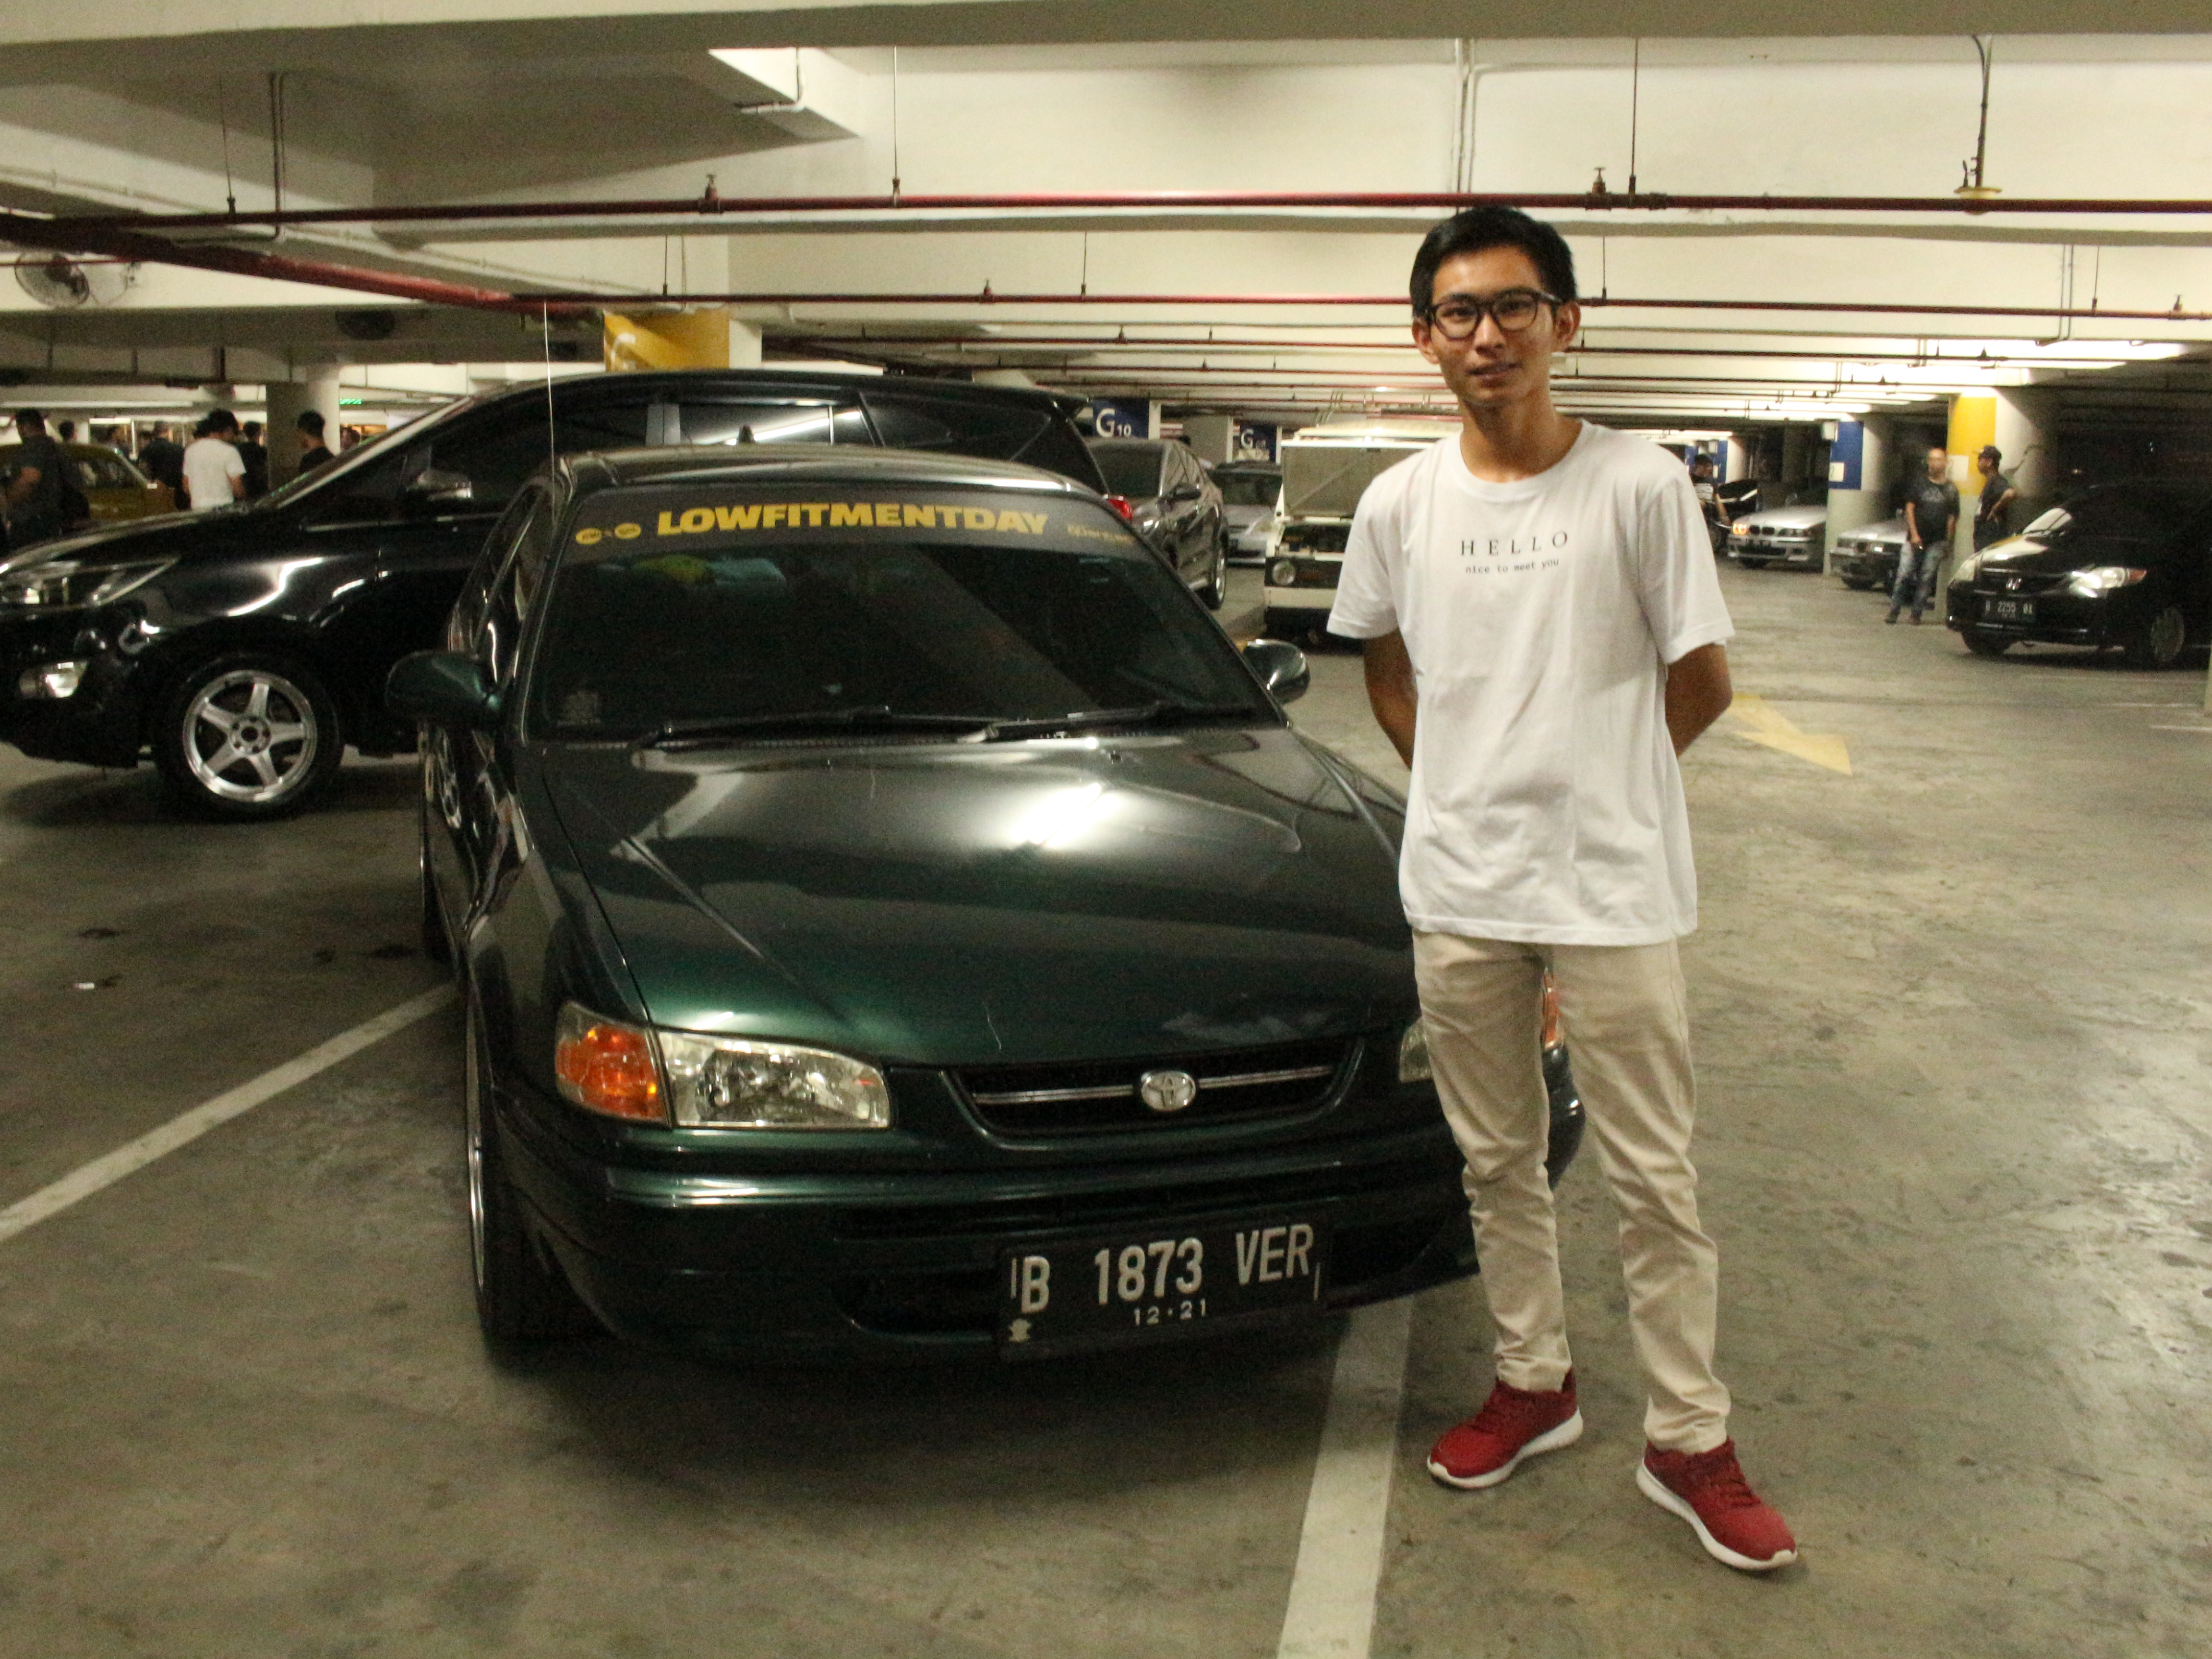 Lowfitment Day 6 support by QUANTAC